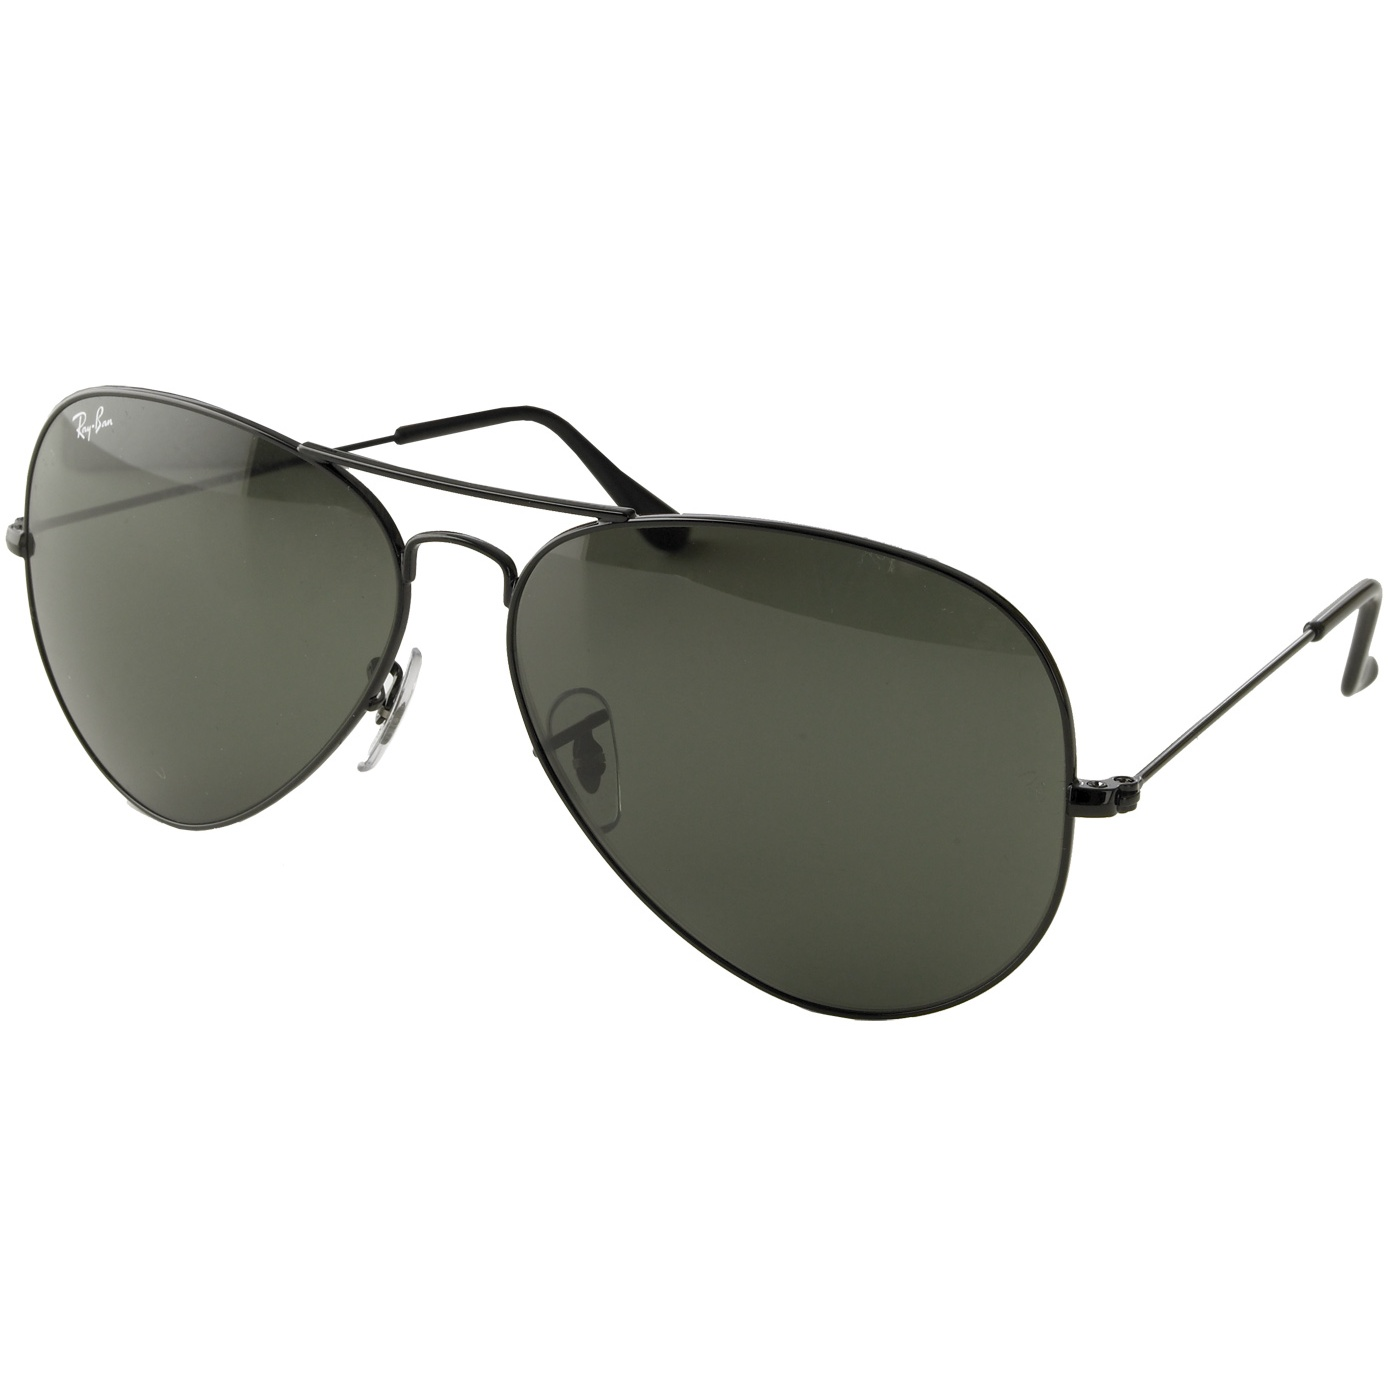 ray ban g15 aviator price  Rayban Aviator Sunglasses - Black Frame with 58mm G-15 Lens